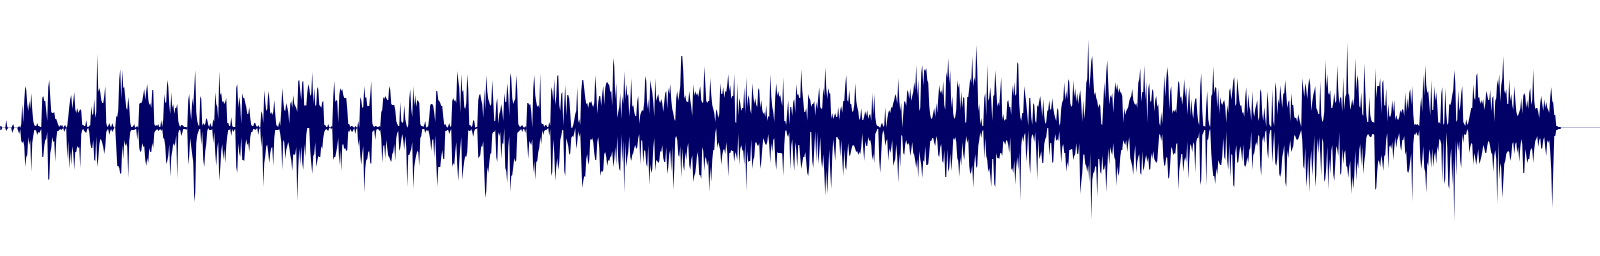 waveform of track #145865